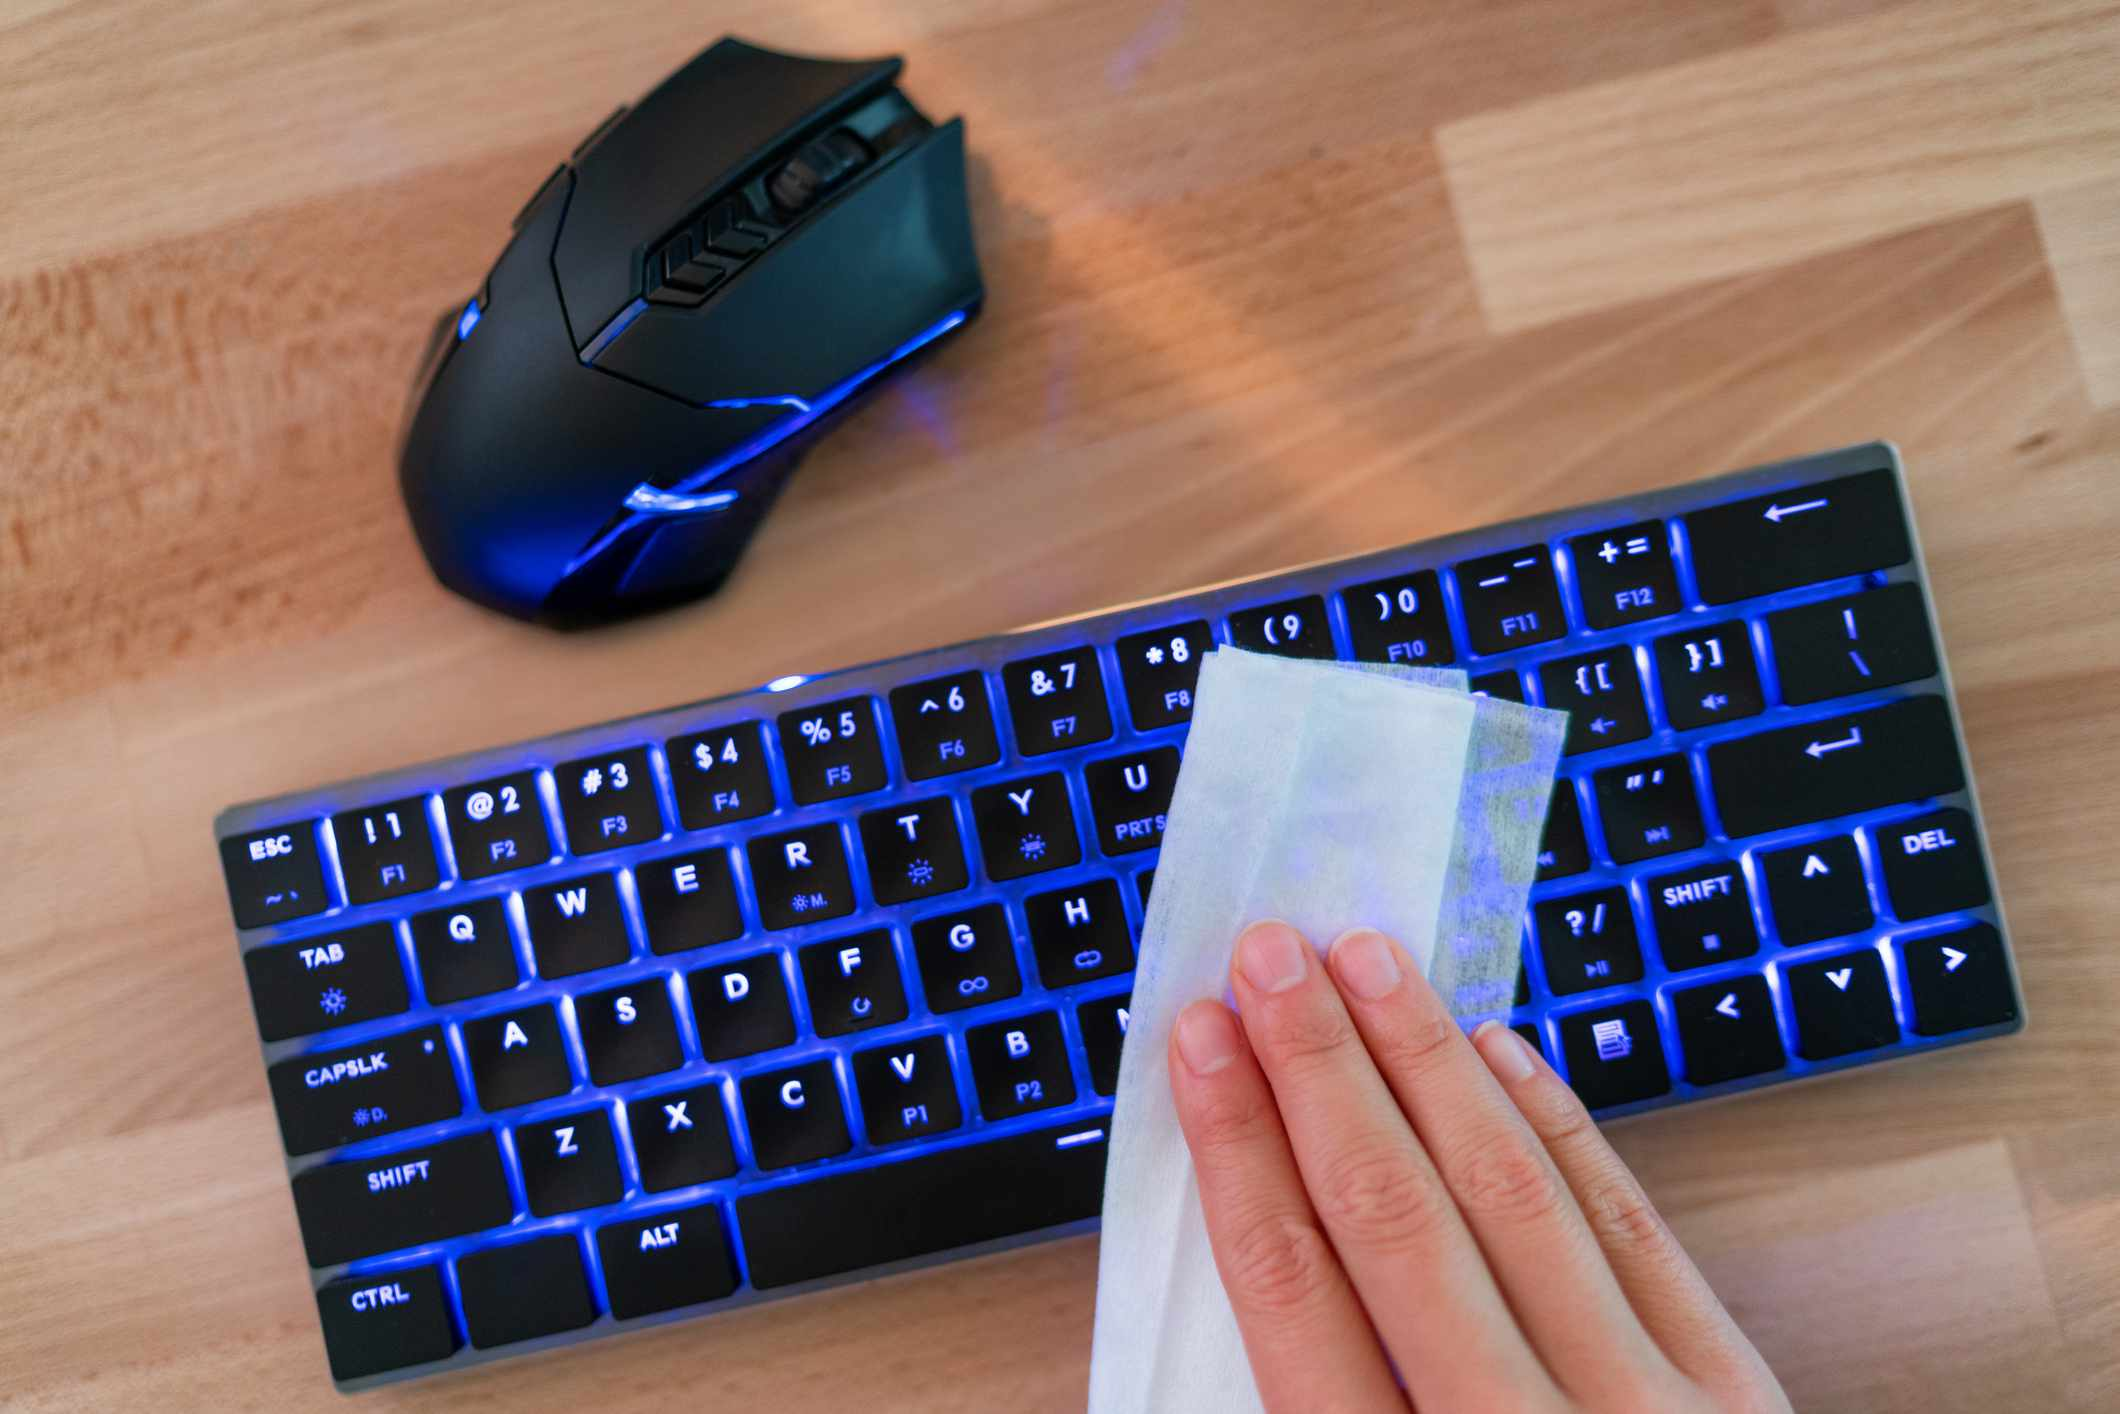 Person wiping a backlit keyboard with a disinfecting wipeh